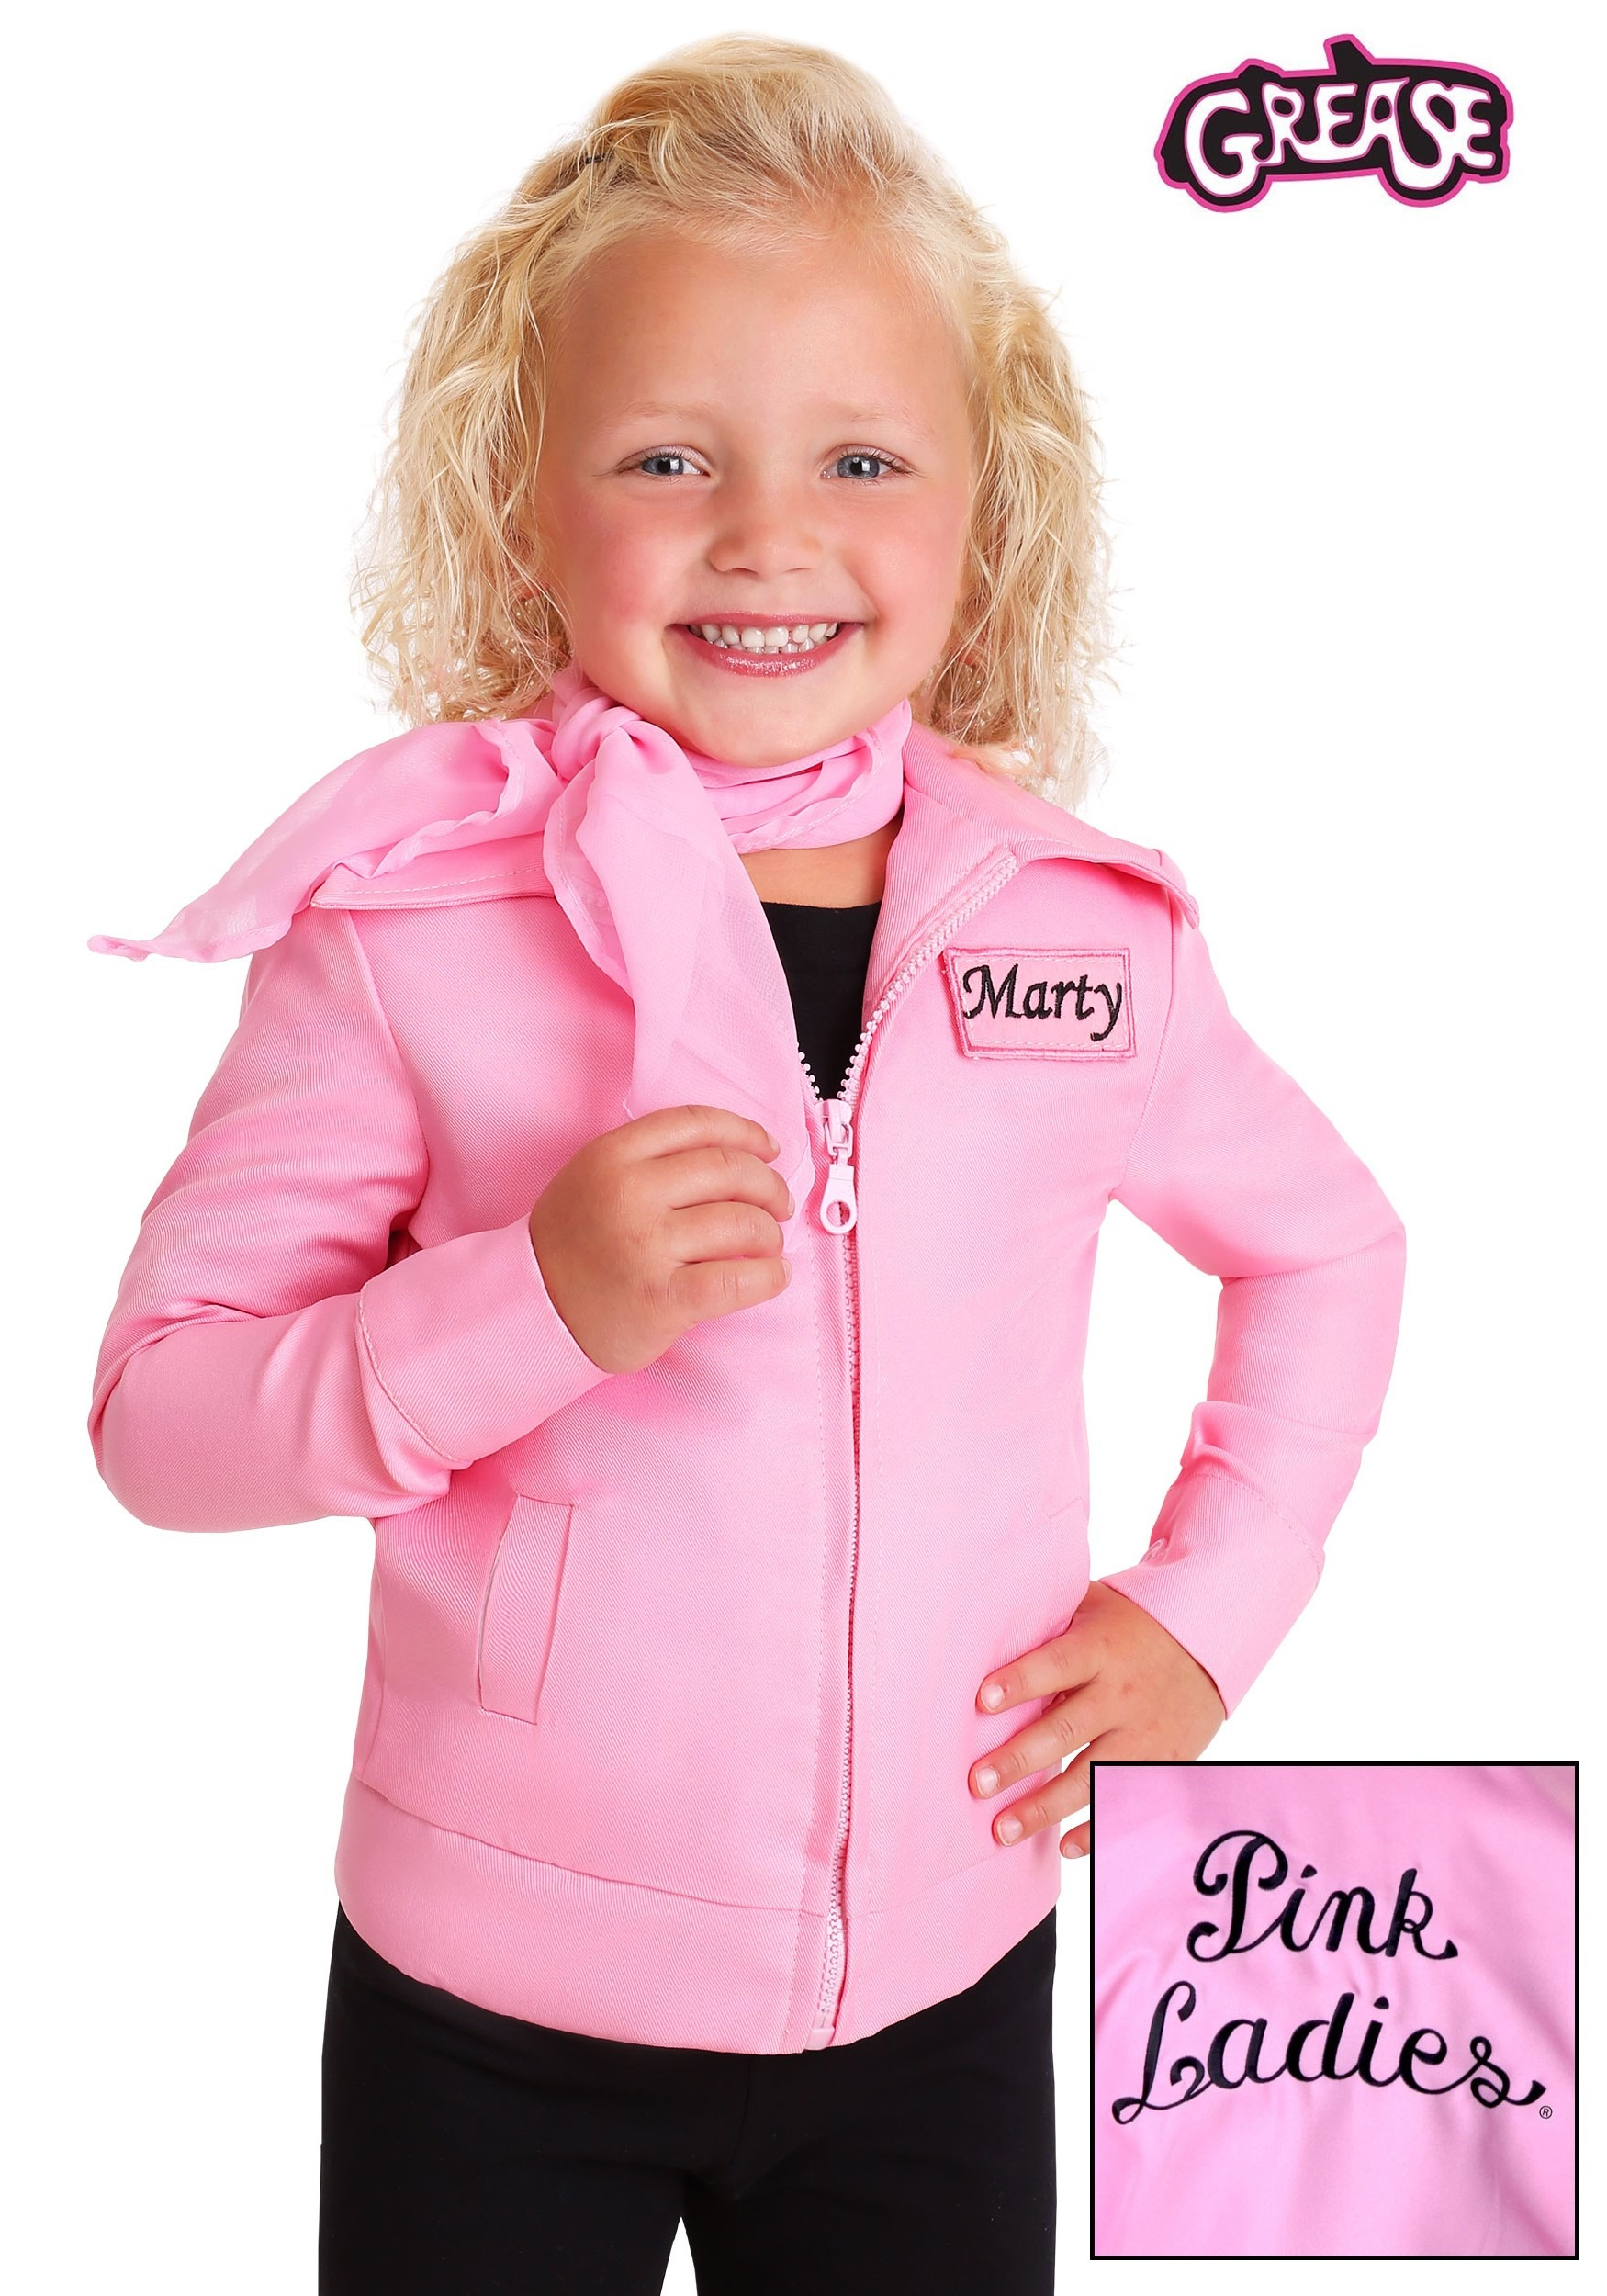 c988a26d72 Toddler Authentic Pink Ladies Jacket Costume